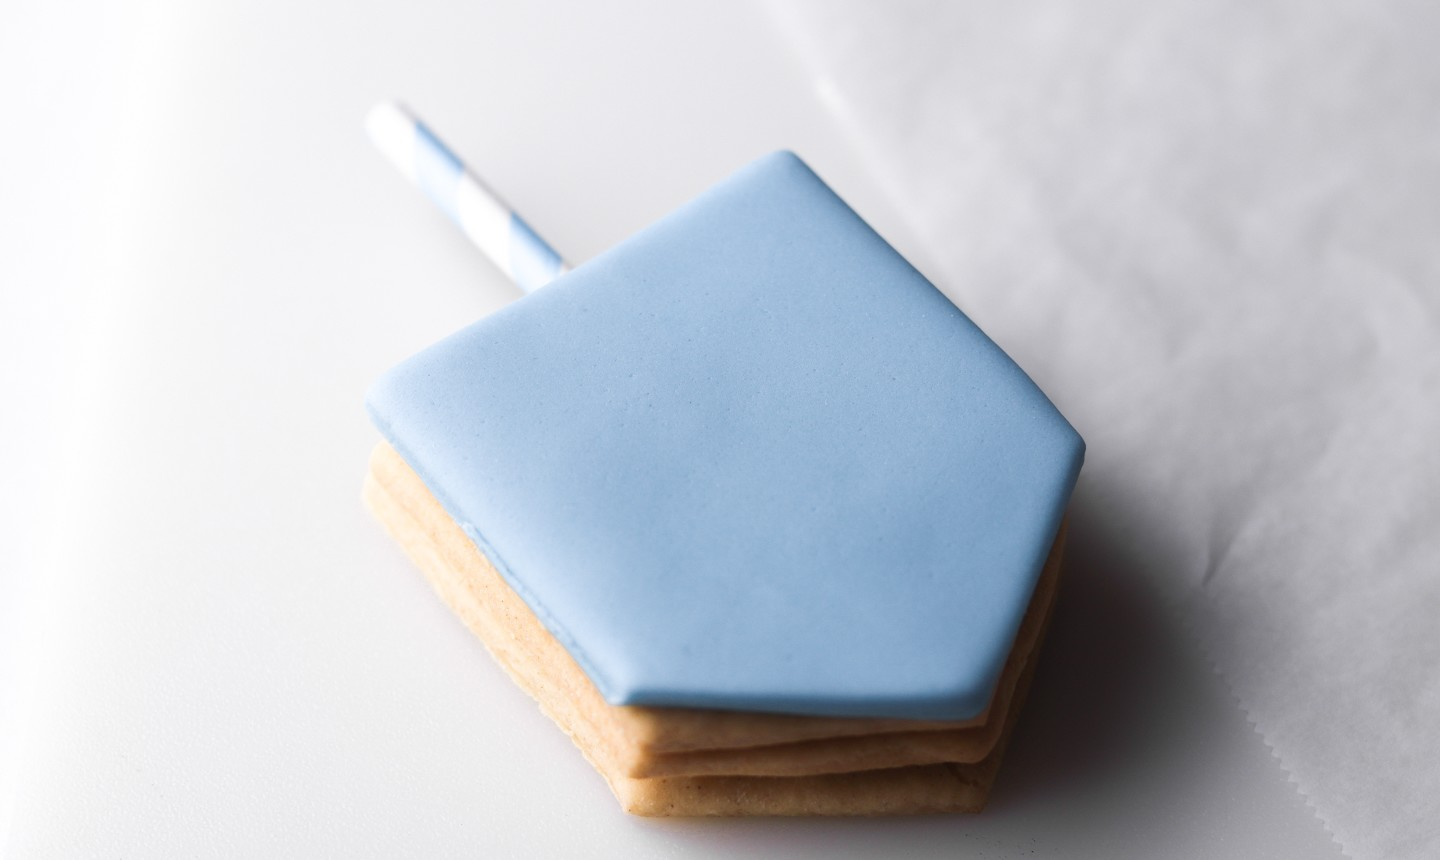 dreidel cookie with blue fondant